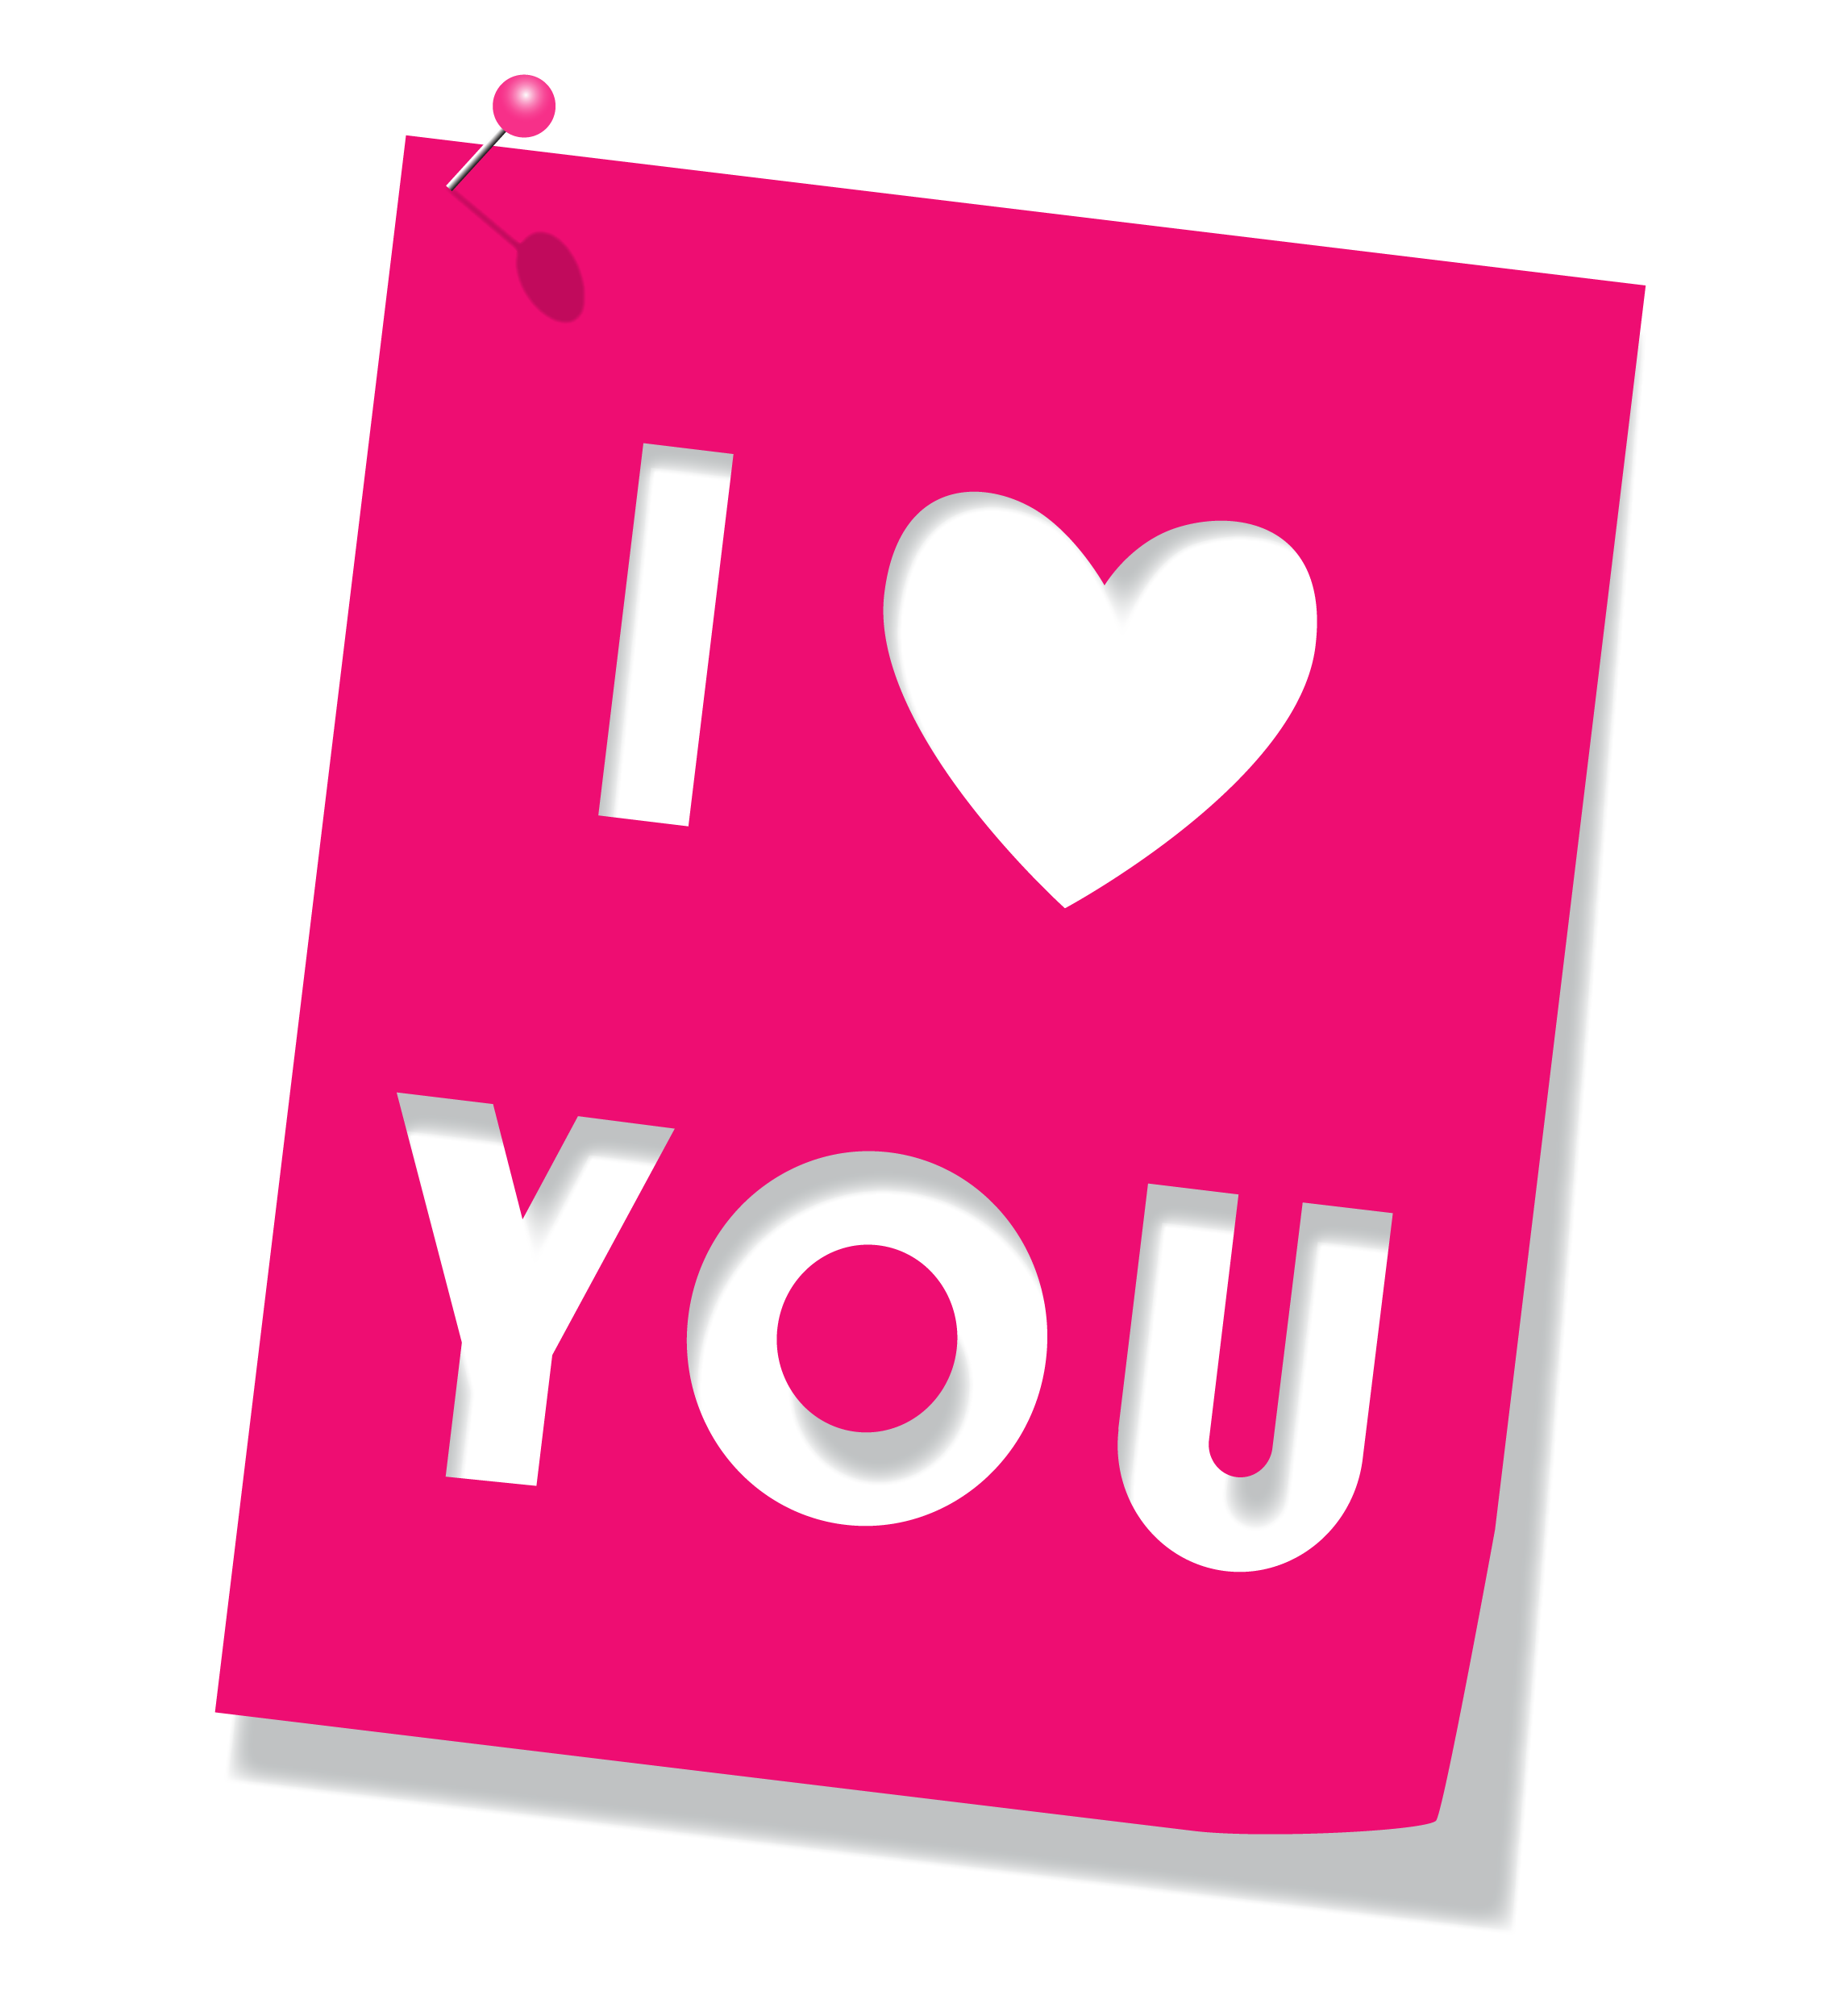 I Love You PNG File